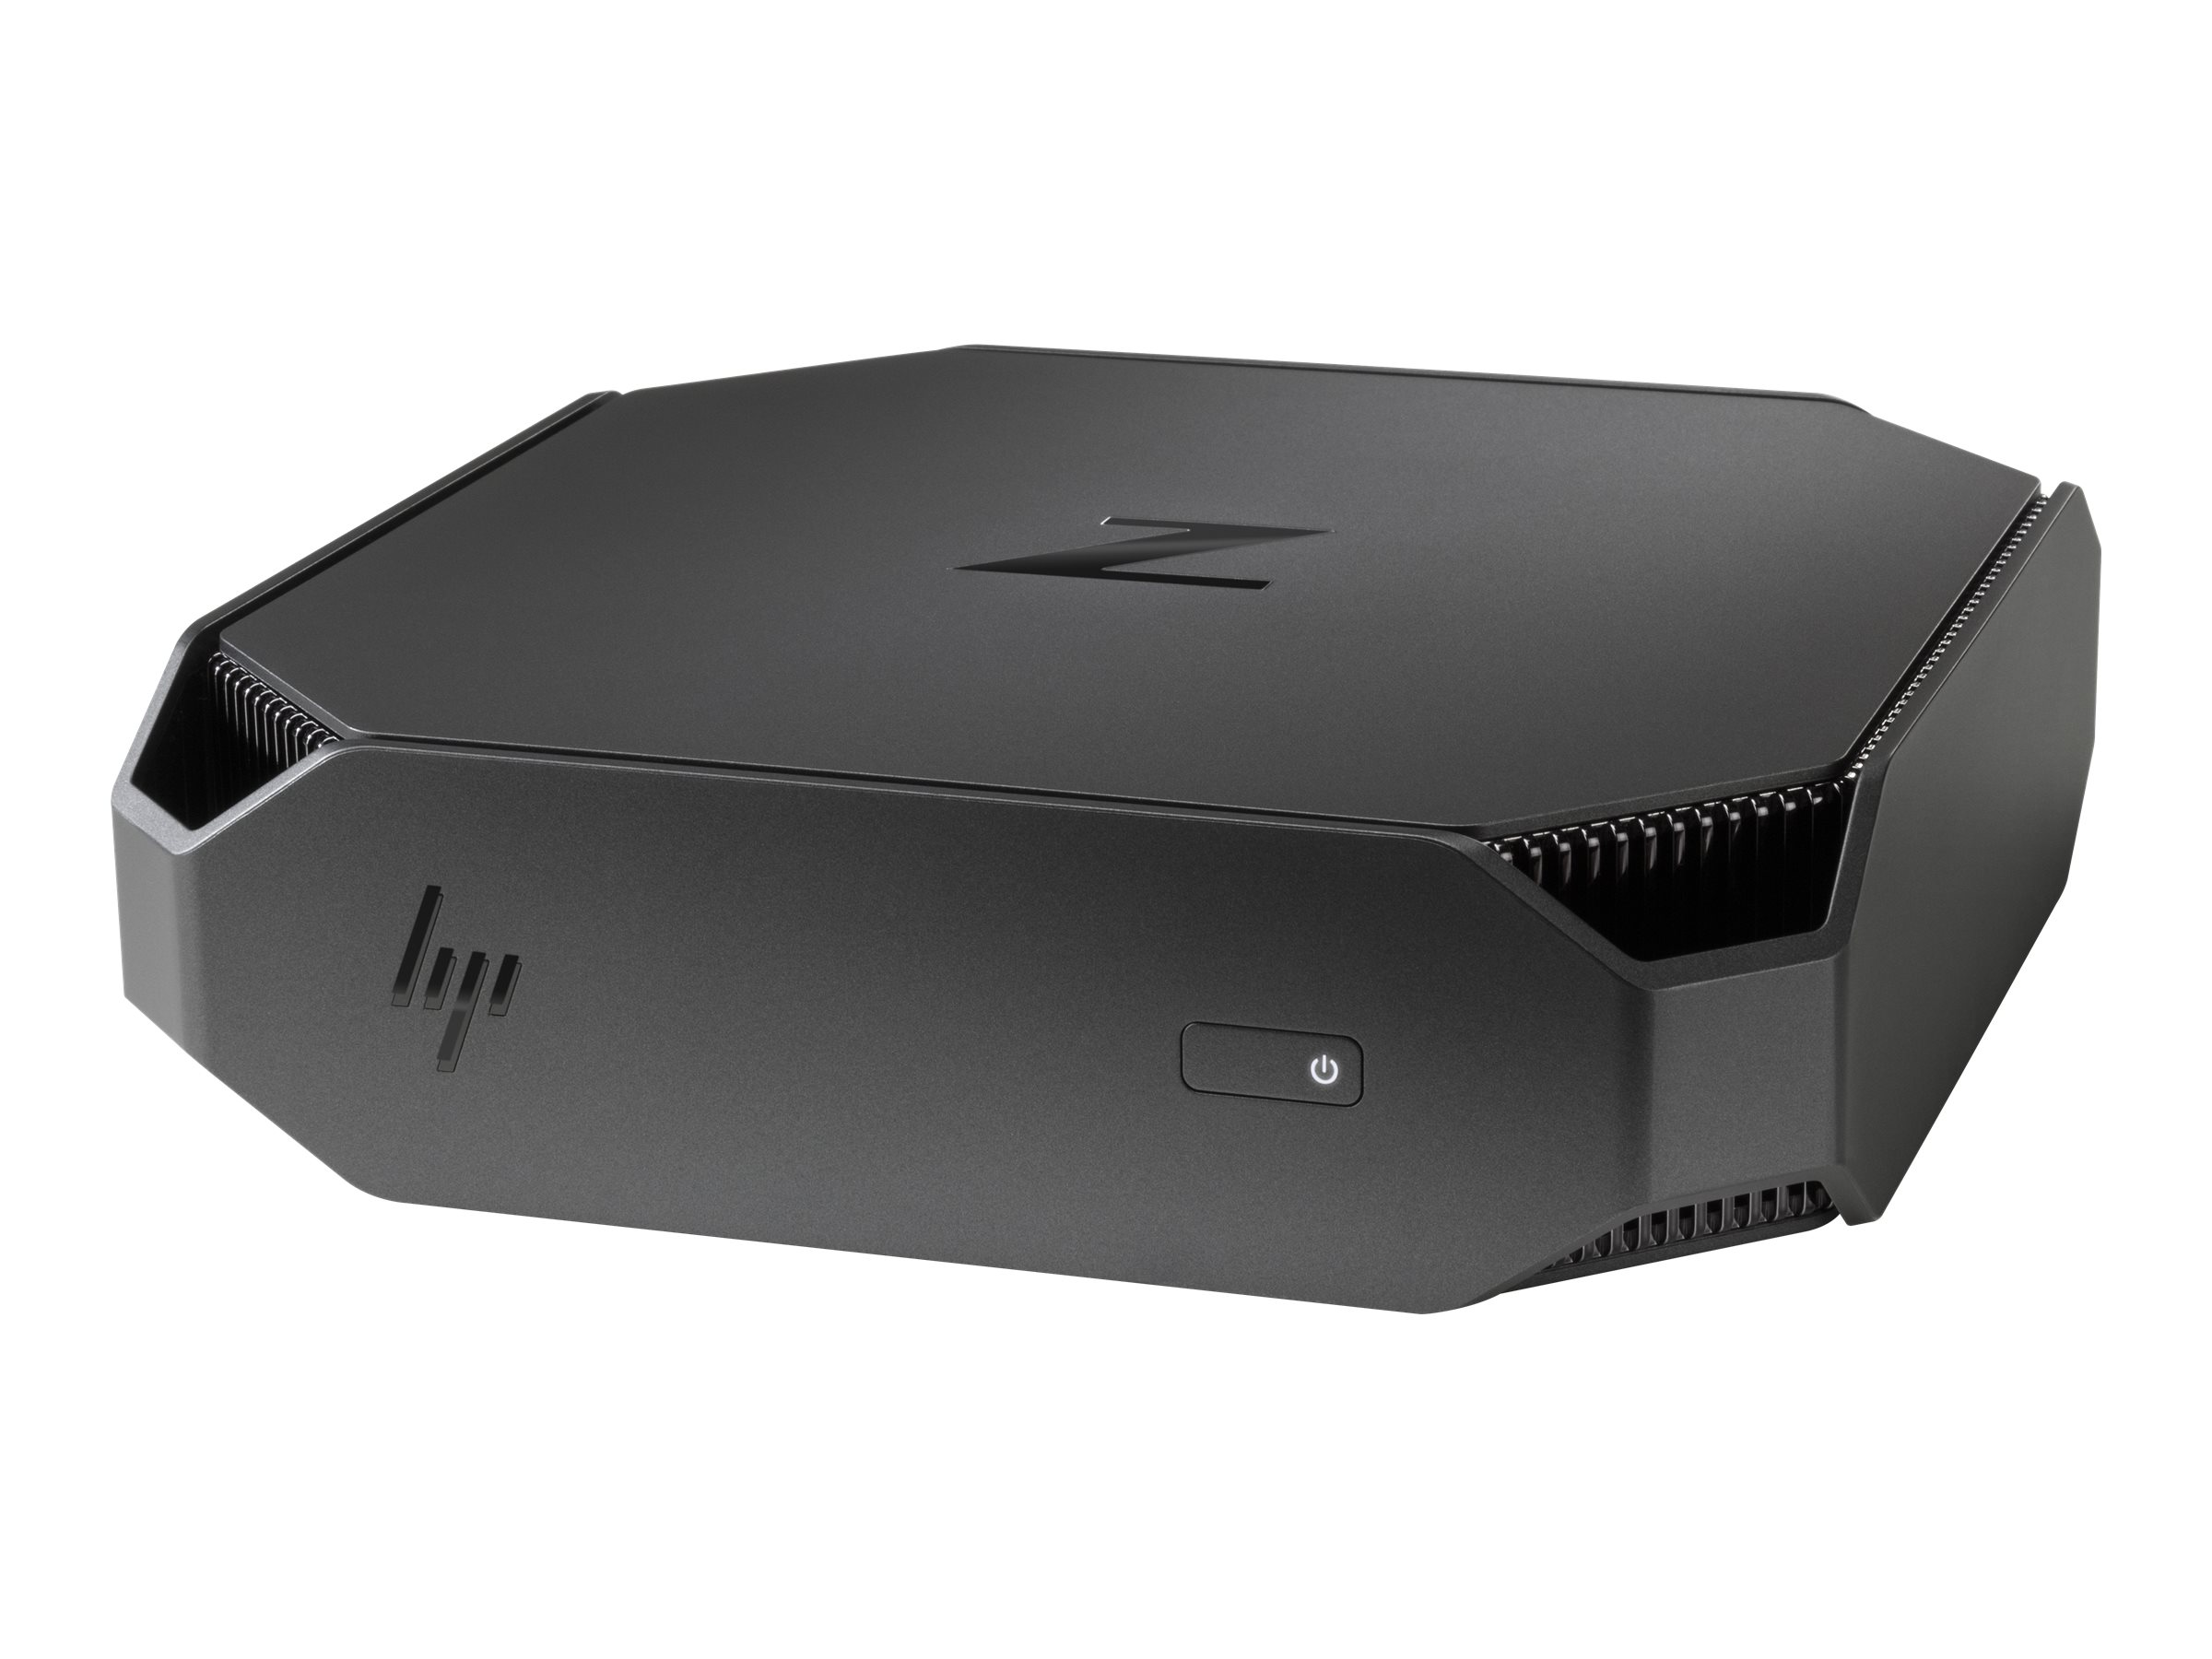 HP Workstation Z2 Mini G3 Entry - Mini - 1 x Core i7 6700 / 3.4 GHz - RAM 8 GB - HDD 1 TB - HD Graphics 530